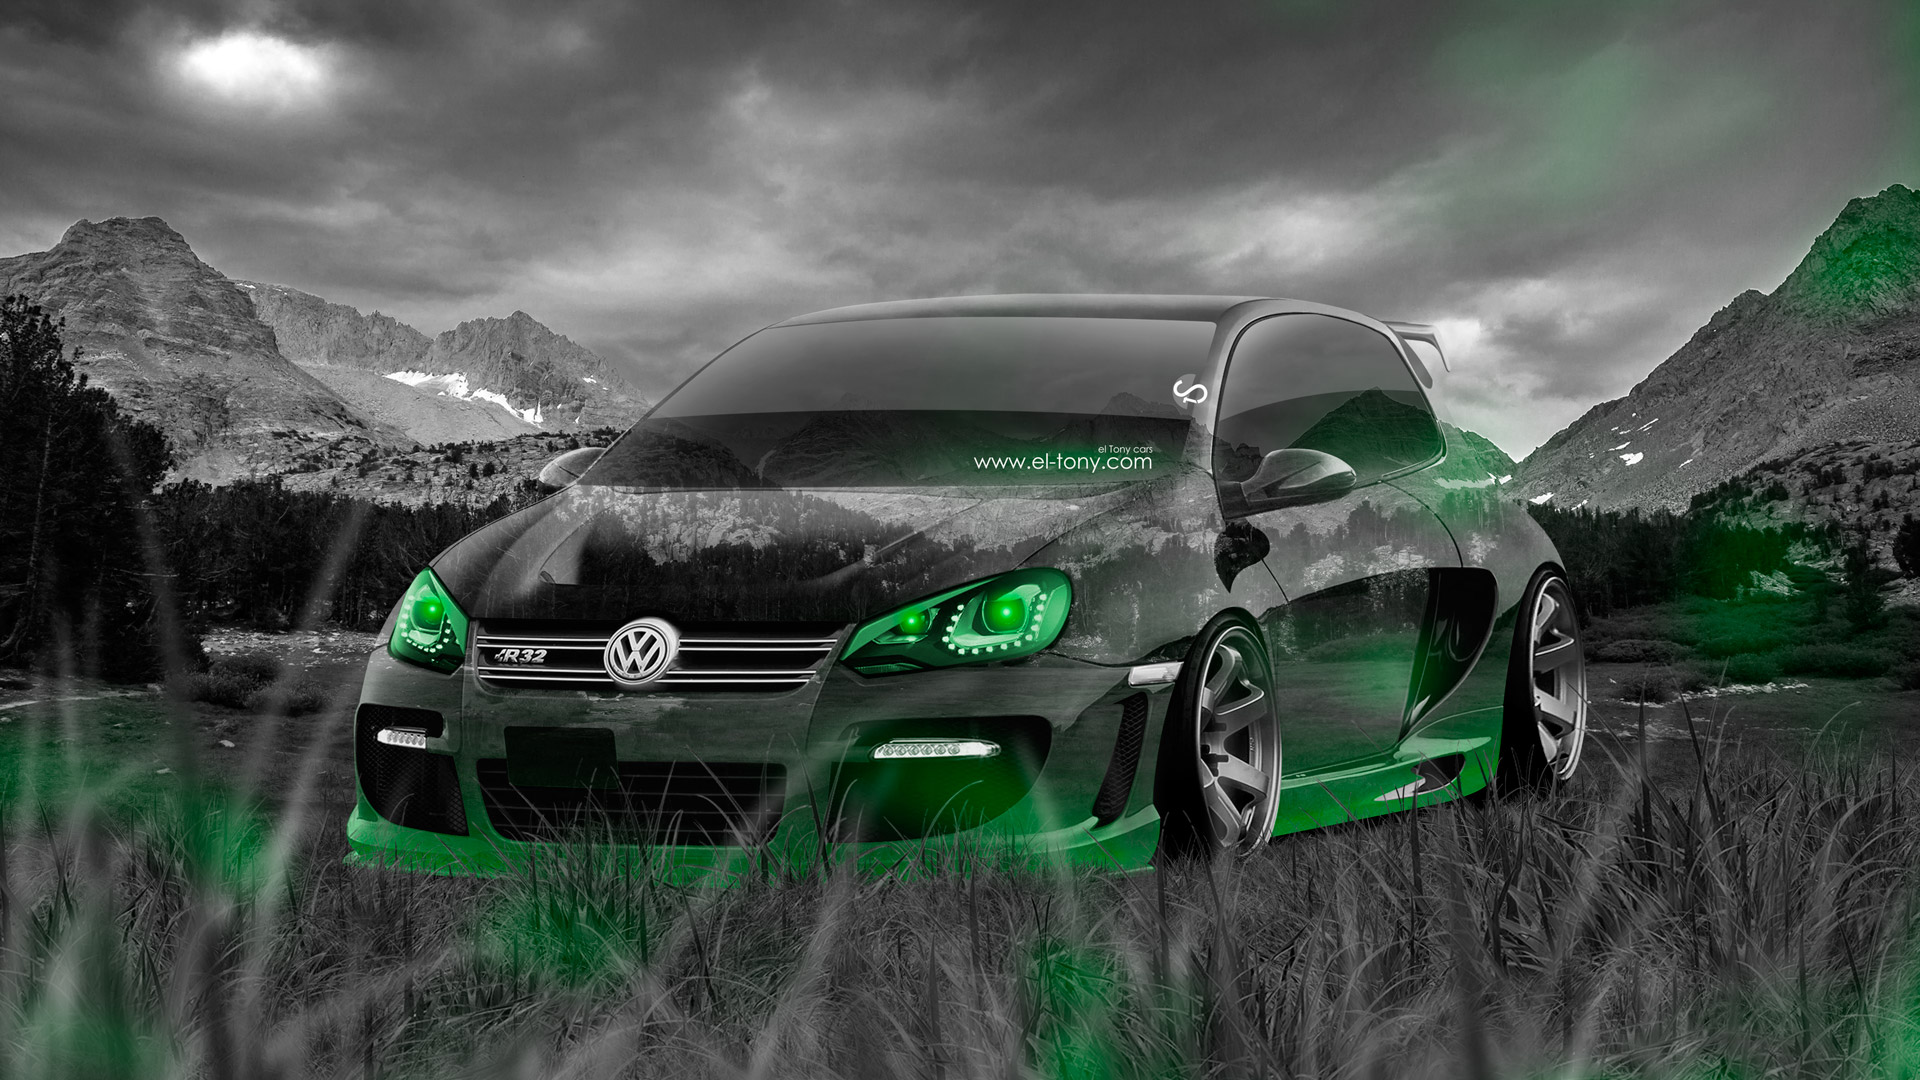 Volkswagen Golf R32 Tuning Crystal Nature Car 2014